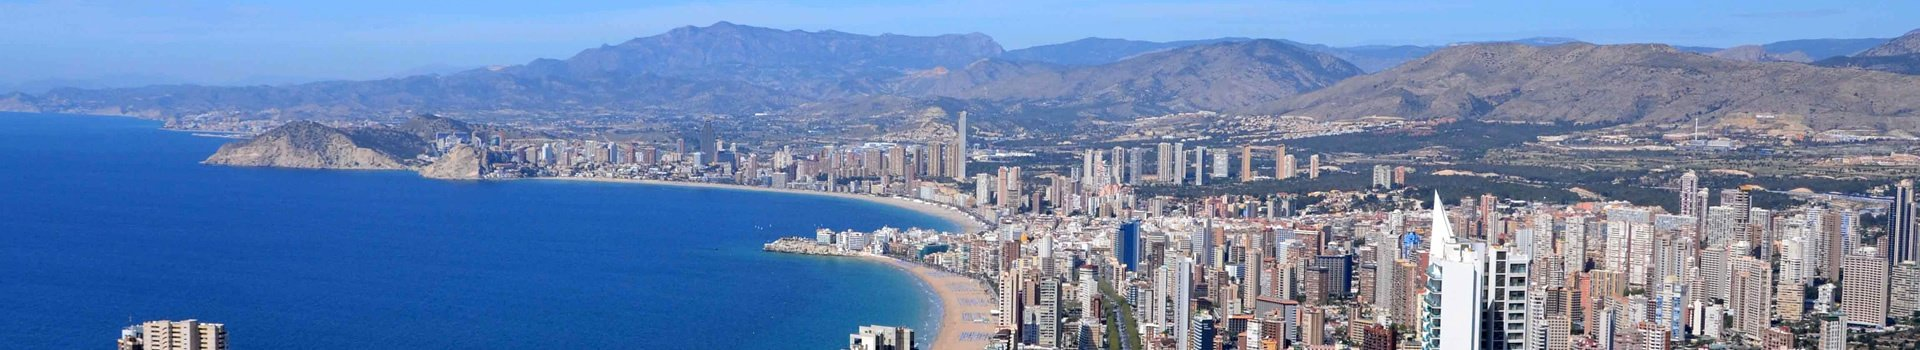 Magic Villa Benidorm - Benidorm -